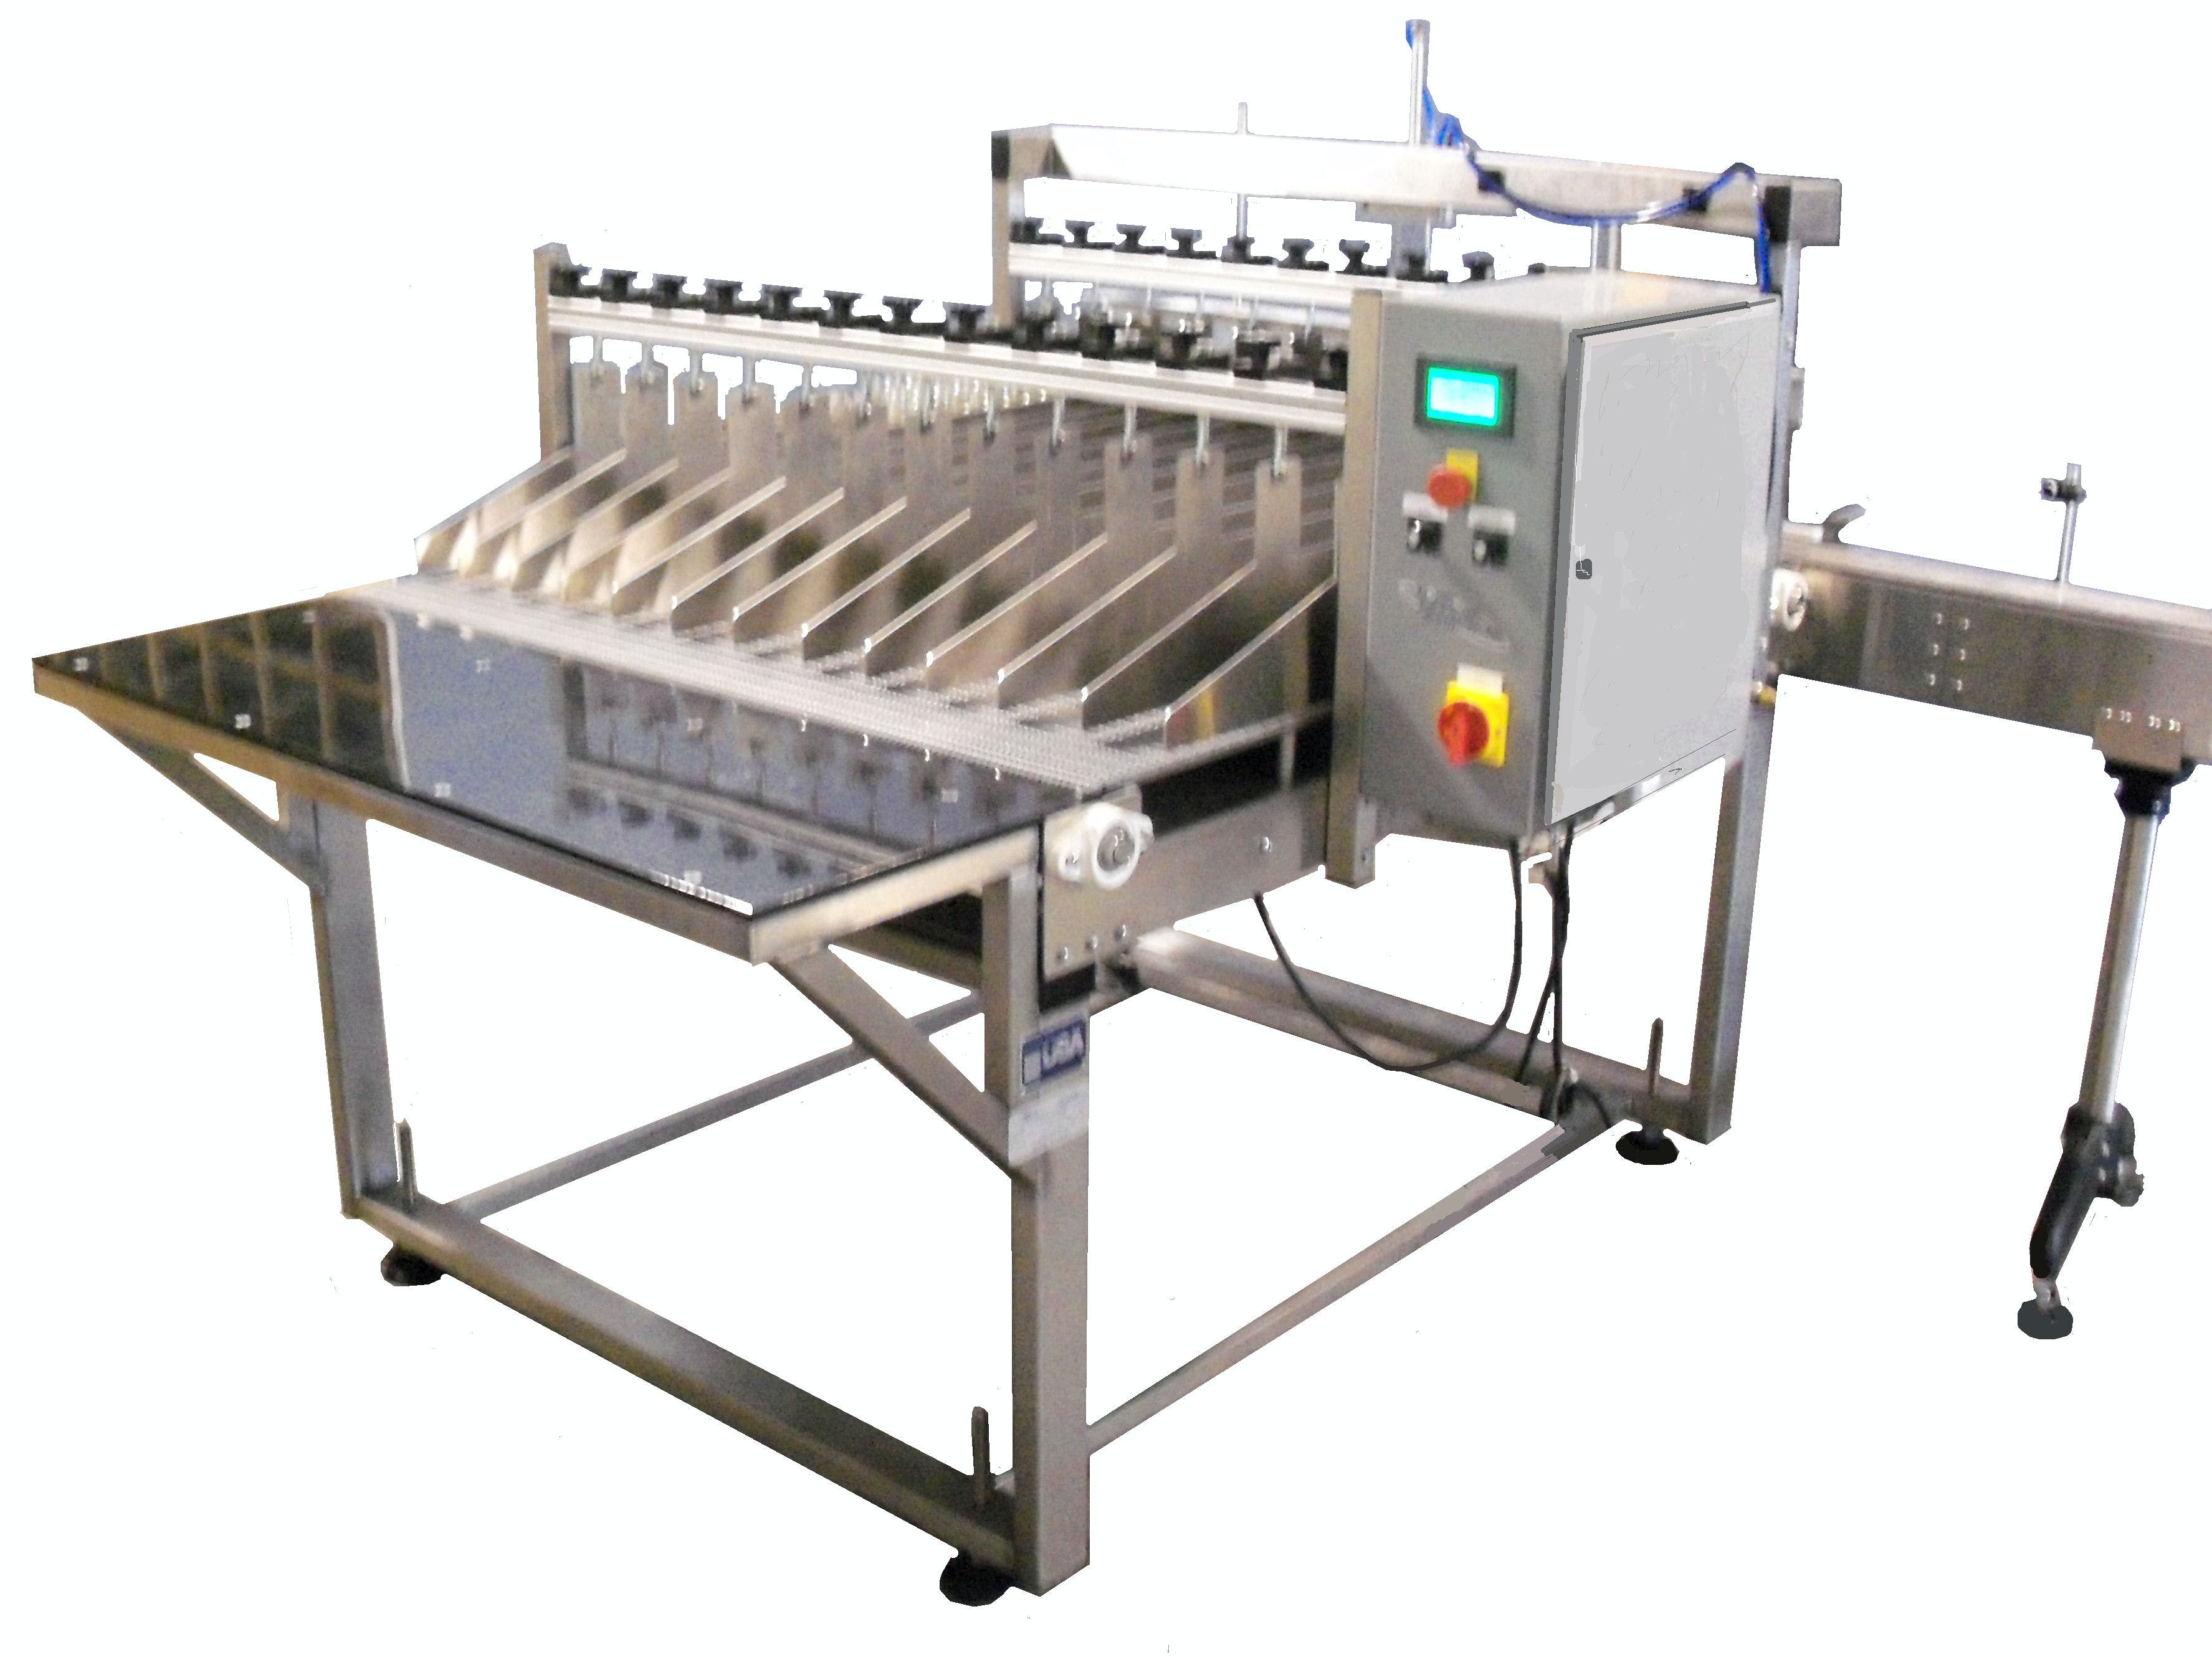 Power Conveyor Systems - sold by Liquid Packaging Solutions